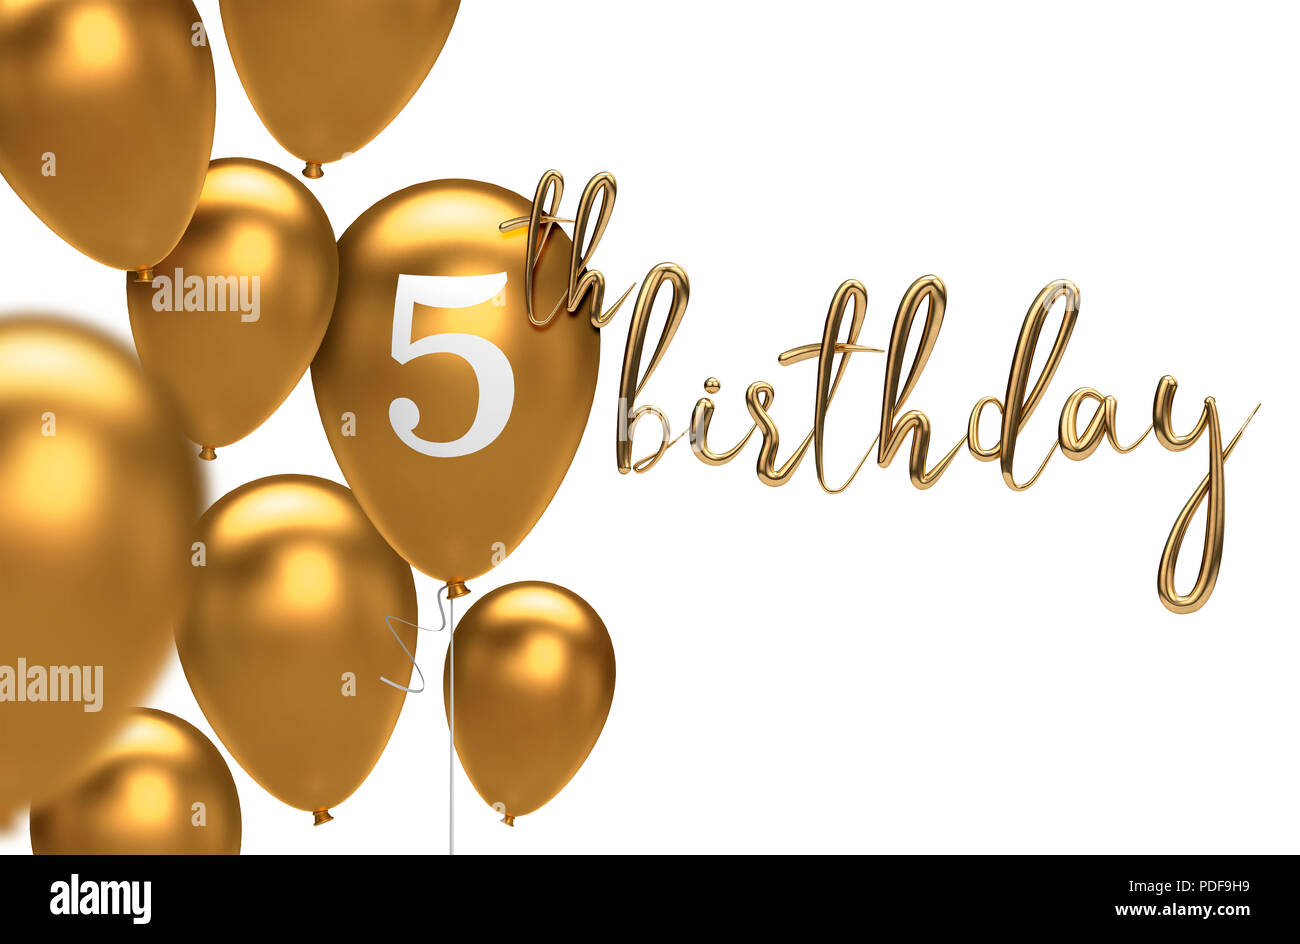 Gold Happy 5th Birthday Balloon Greeting Background 3D Rendering